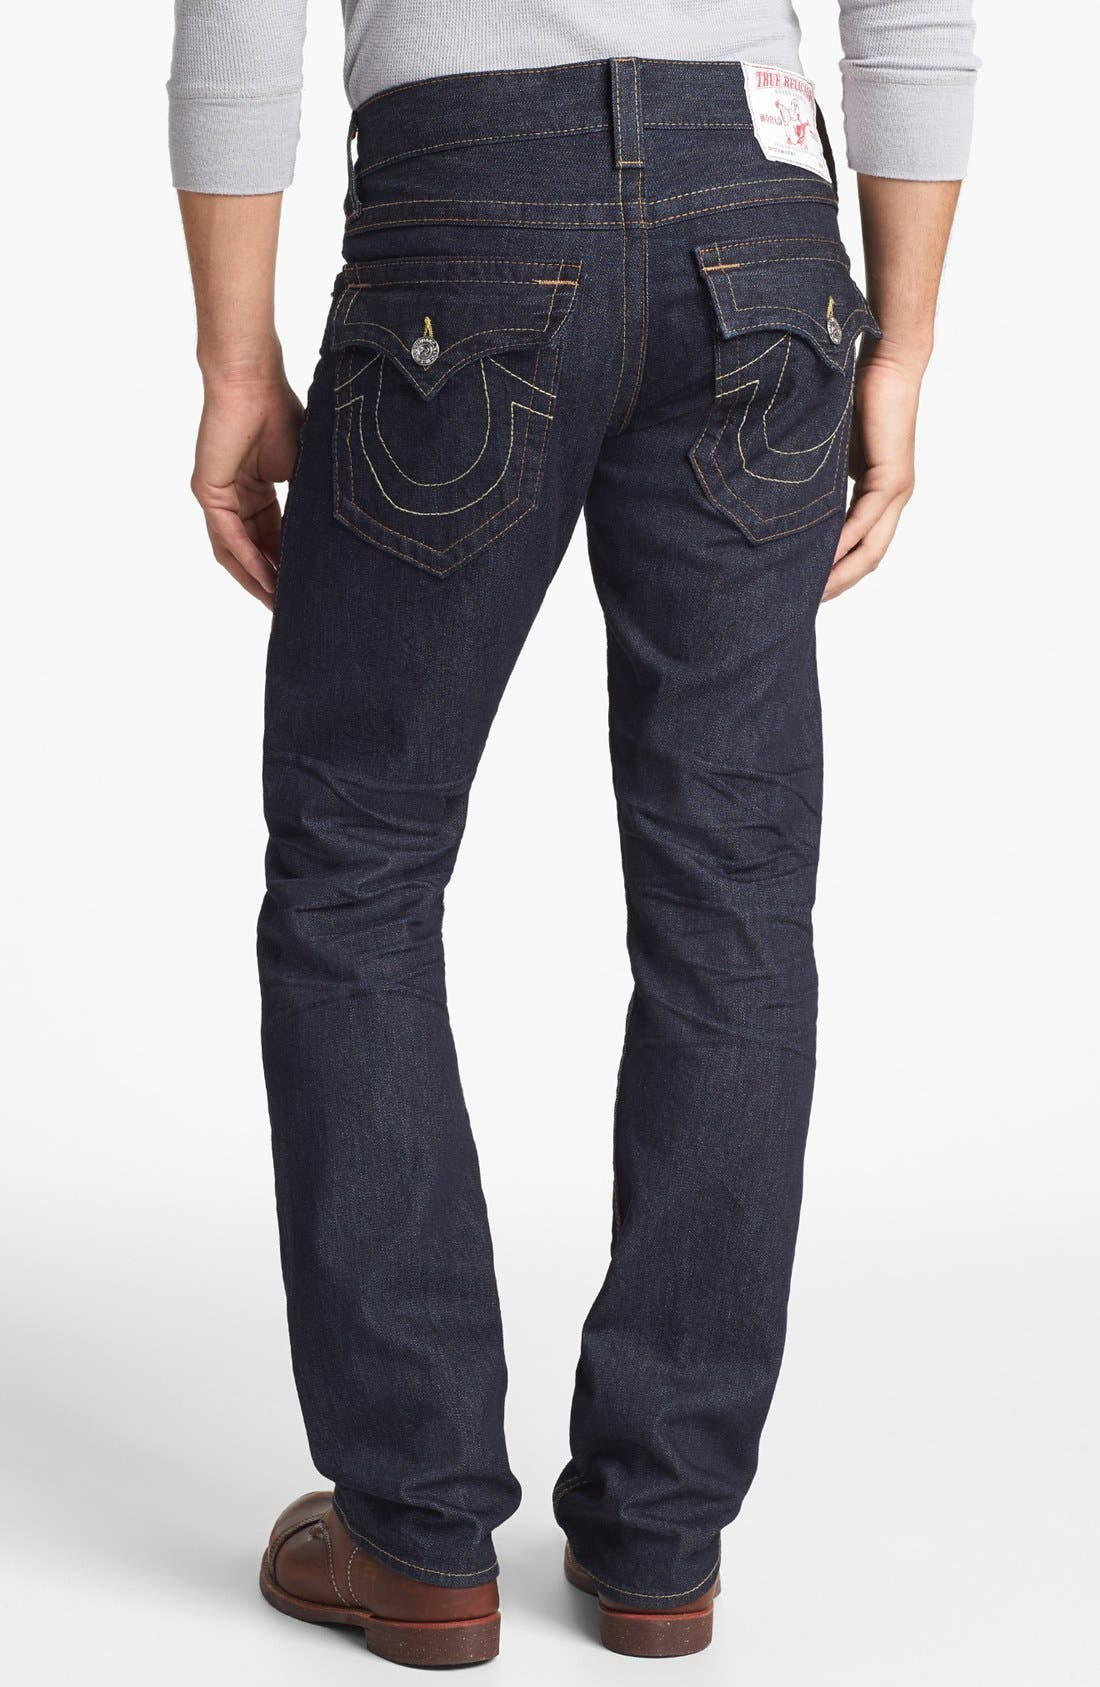 Alternate Image 1 Selected - True Religion Brand Jeans 'Ricky' Relaxed Fit Jeans (Inglorious)